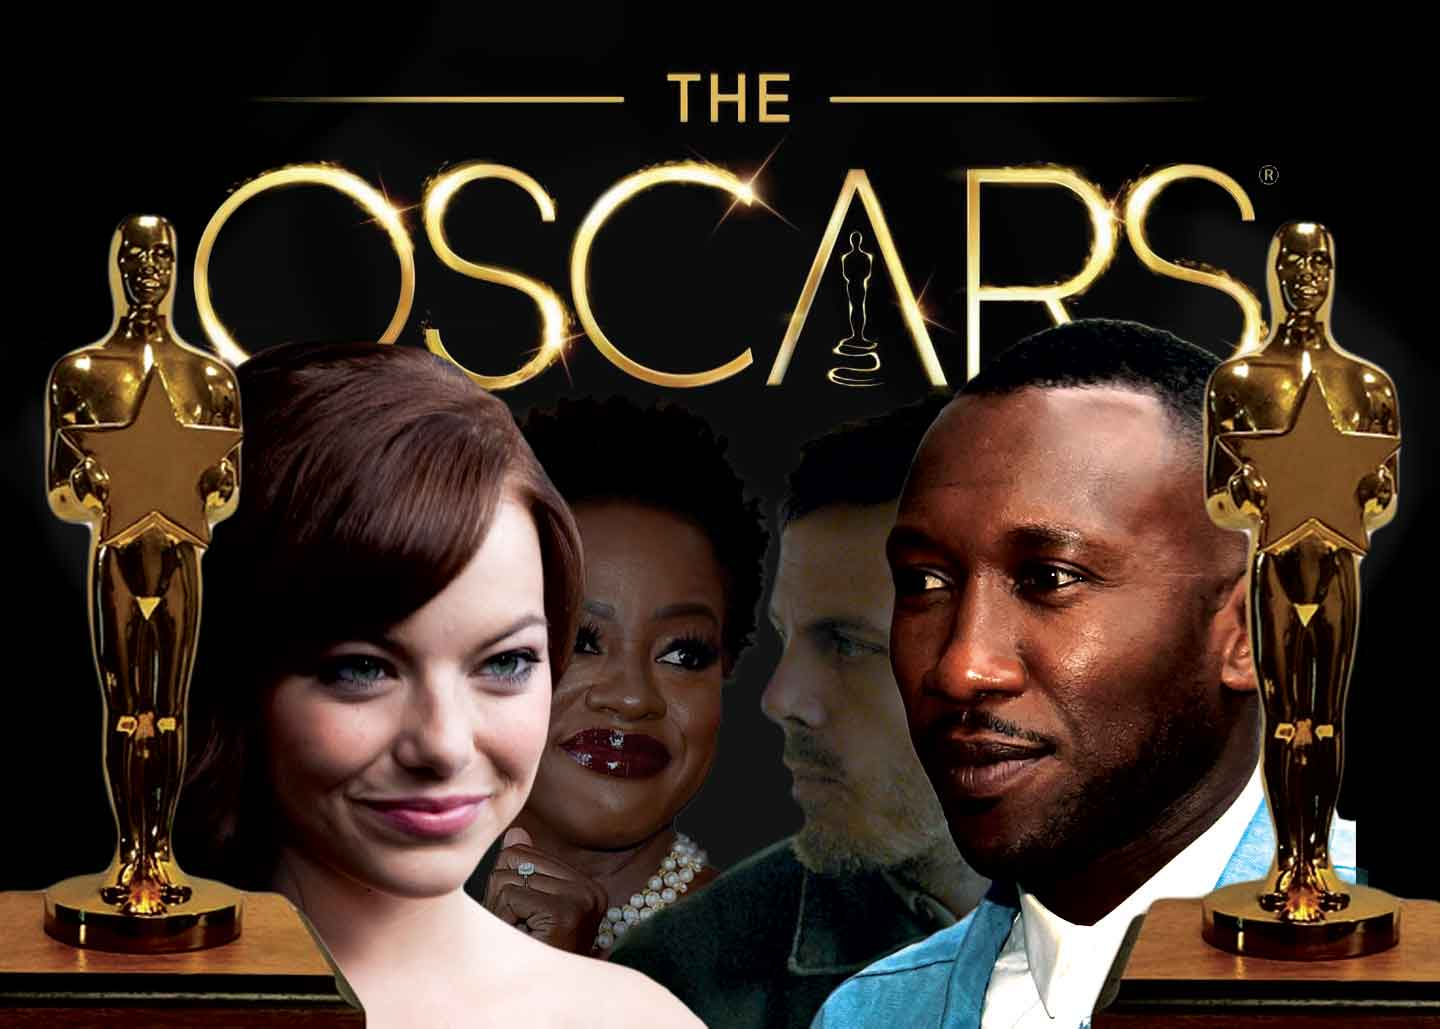 Four of the Oscar Nominated Actors in order of left to right, Emma Stone for best actress, Viola Davis for best supporting actress, Casey Affleck for best Actor, and Mahershala Ali for best supporting actor.